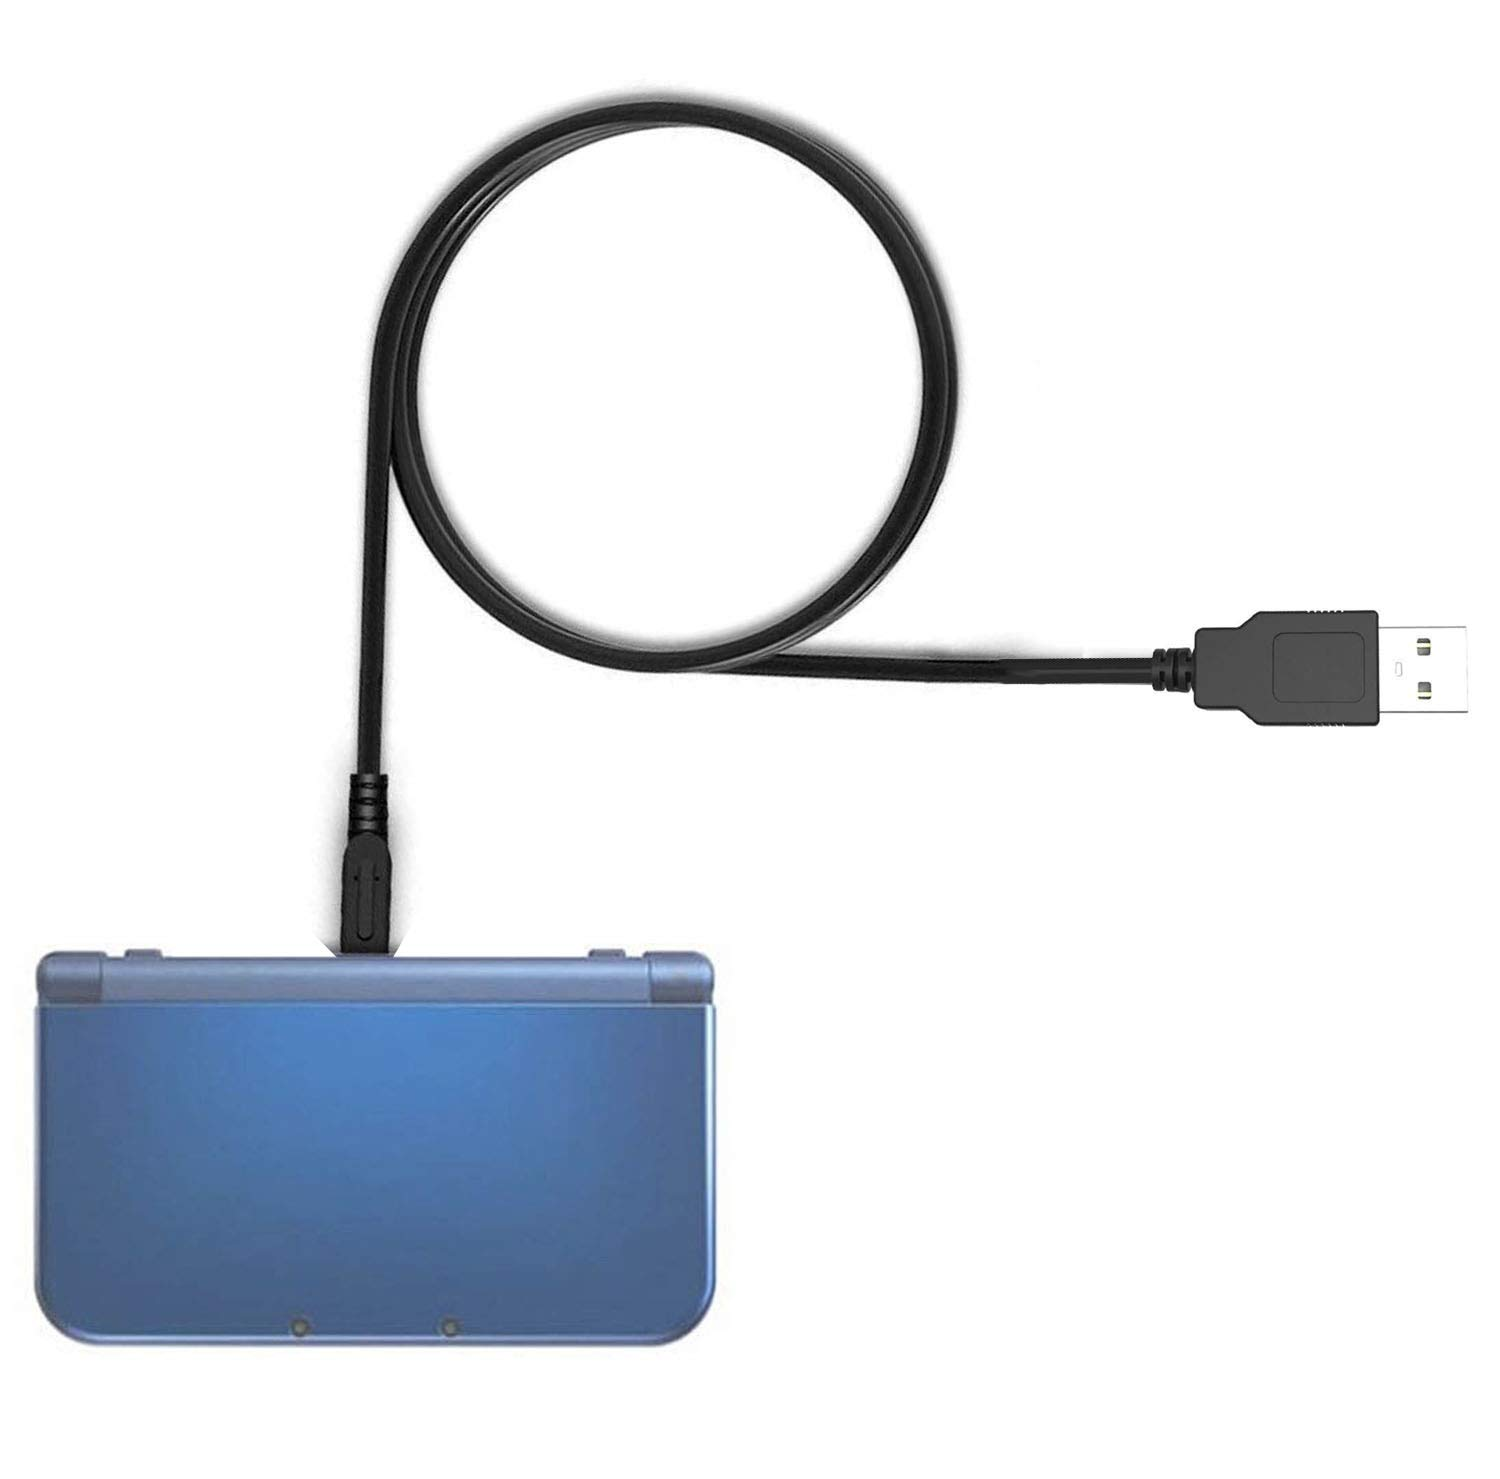 USB Charge Cable Compatible for New Nintendo 2DS XL/New Nintendo 3DS/ New Nintendo 3DS XL/Nintendo 2DS/ Nintendo 3DS XL/Nintendo 3DS/Nintendo DSi XL/Nintendo DSi(4FT Black)